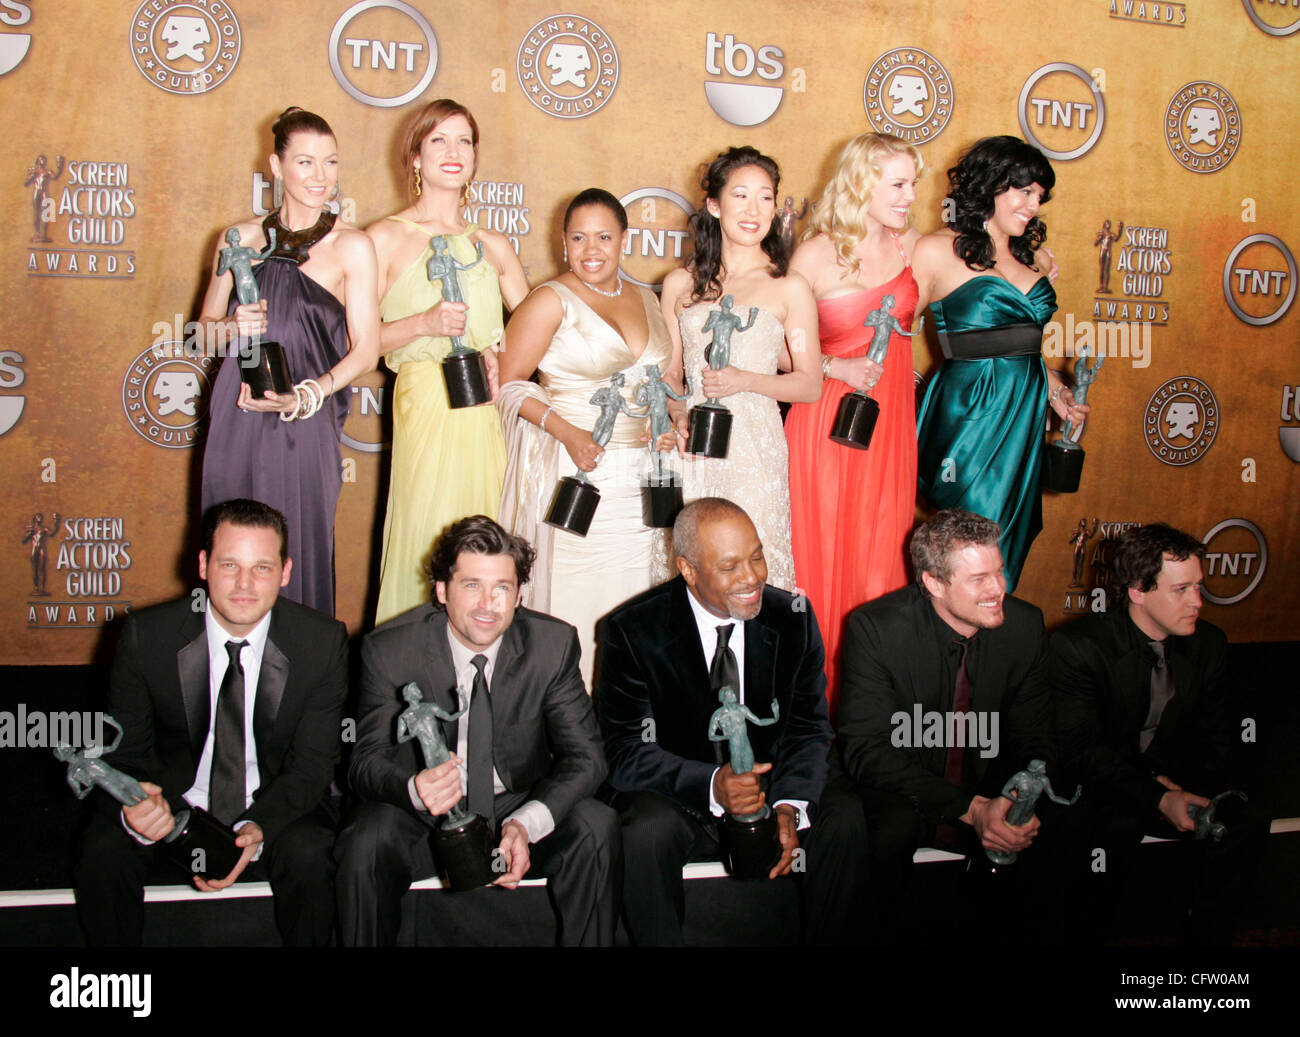 Cast Of Greys Anatomy Stockfotos & Cast Of Greys Anatomy Bilder - Alamy